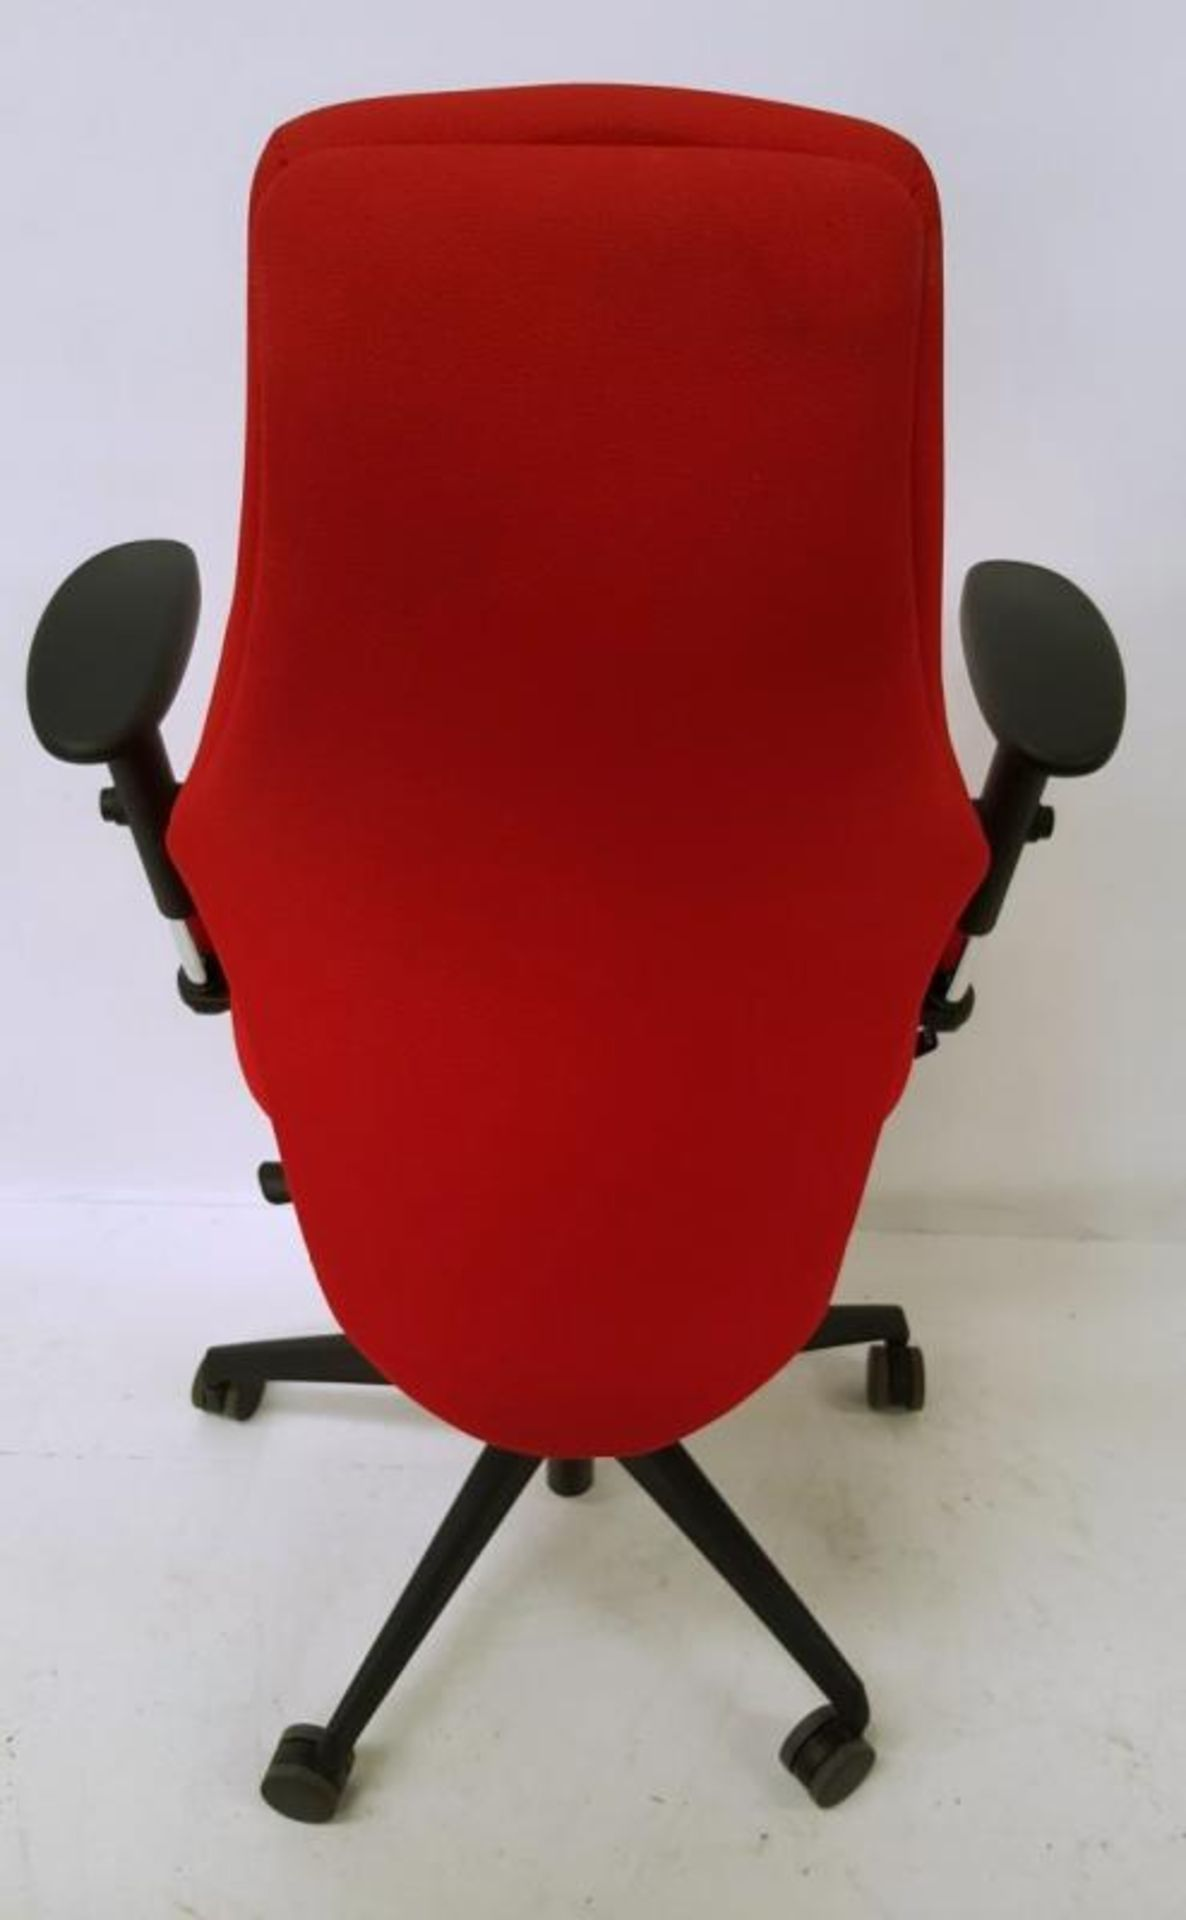 Lot 3510 - A Pair Of LIMA Branded Premium Adjustable Office Chairs Featuring Fixed Lumbar Support And Arm Rests